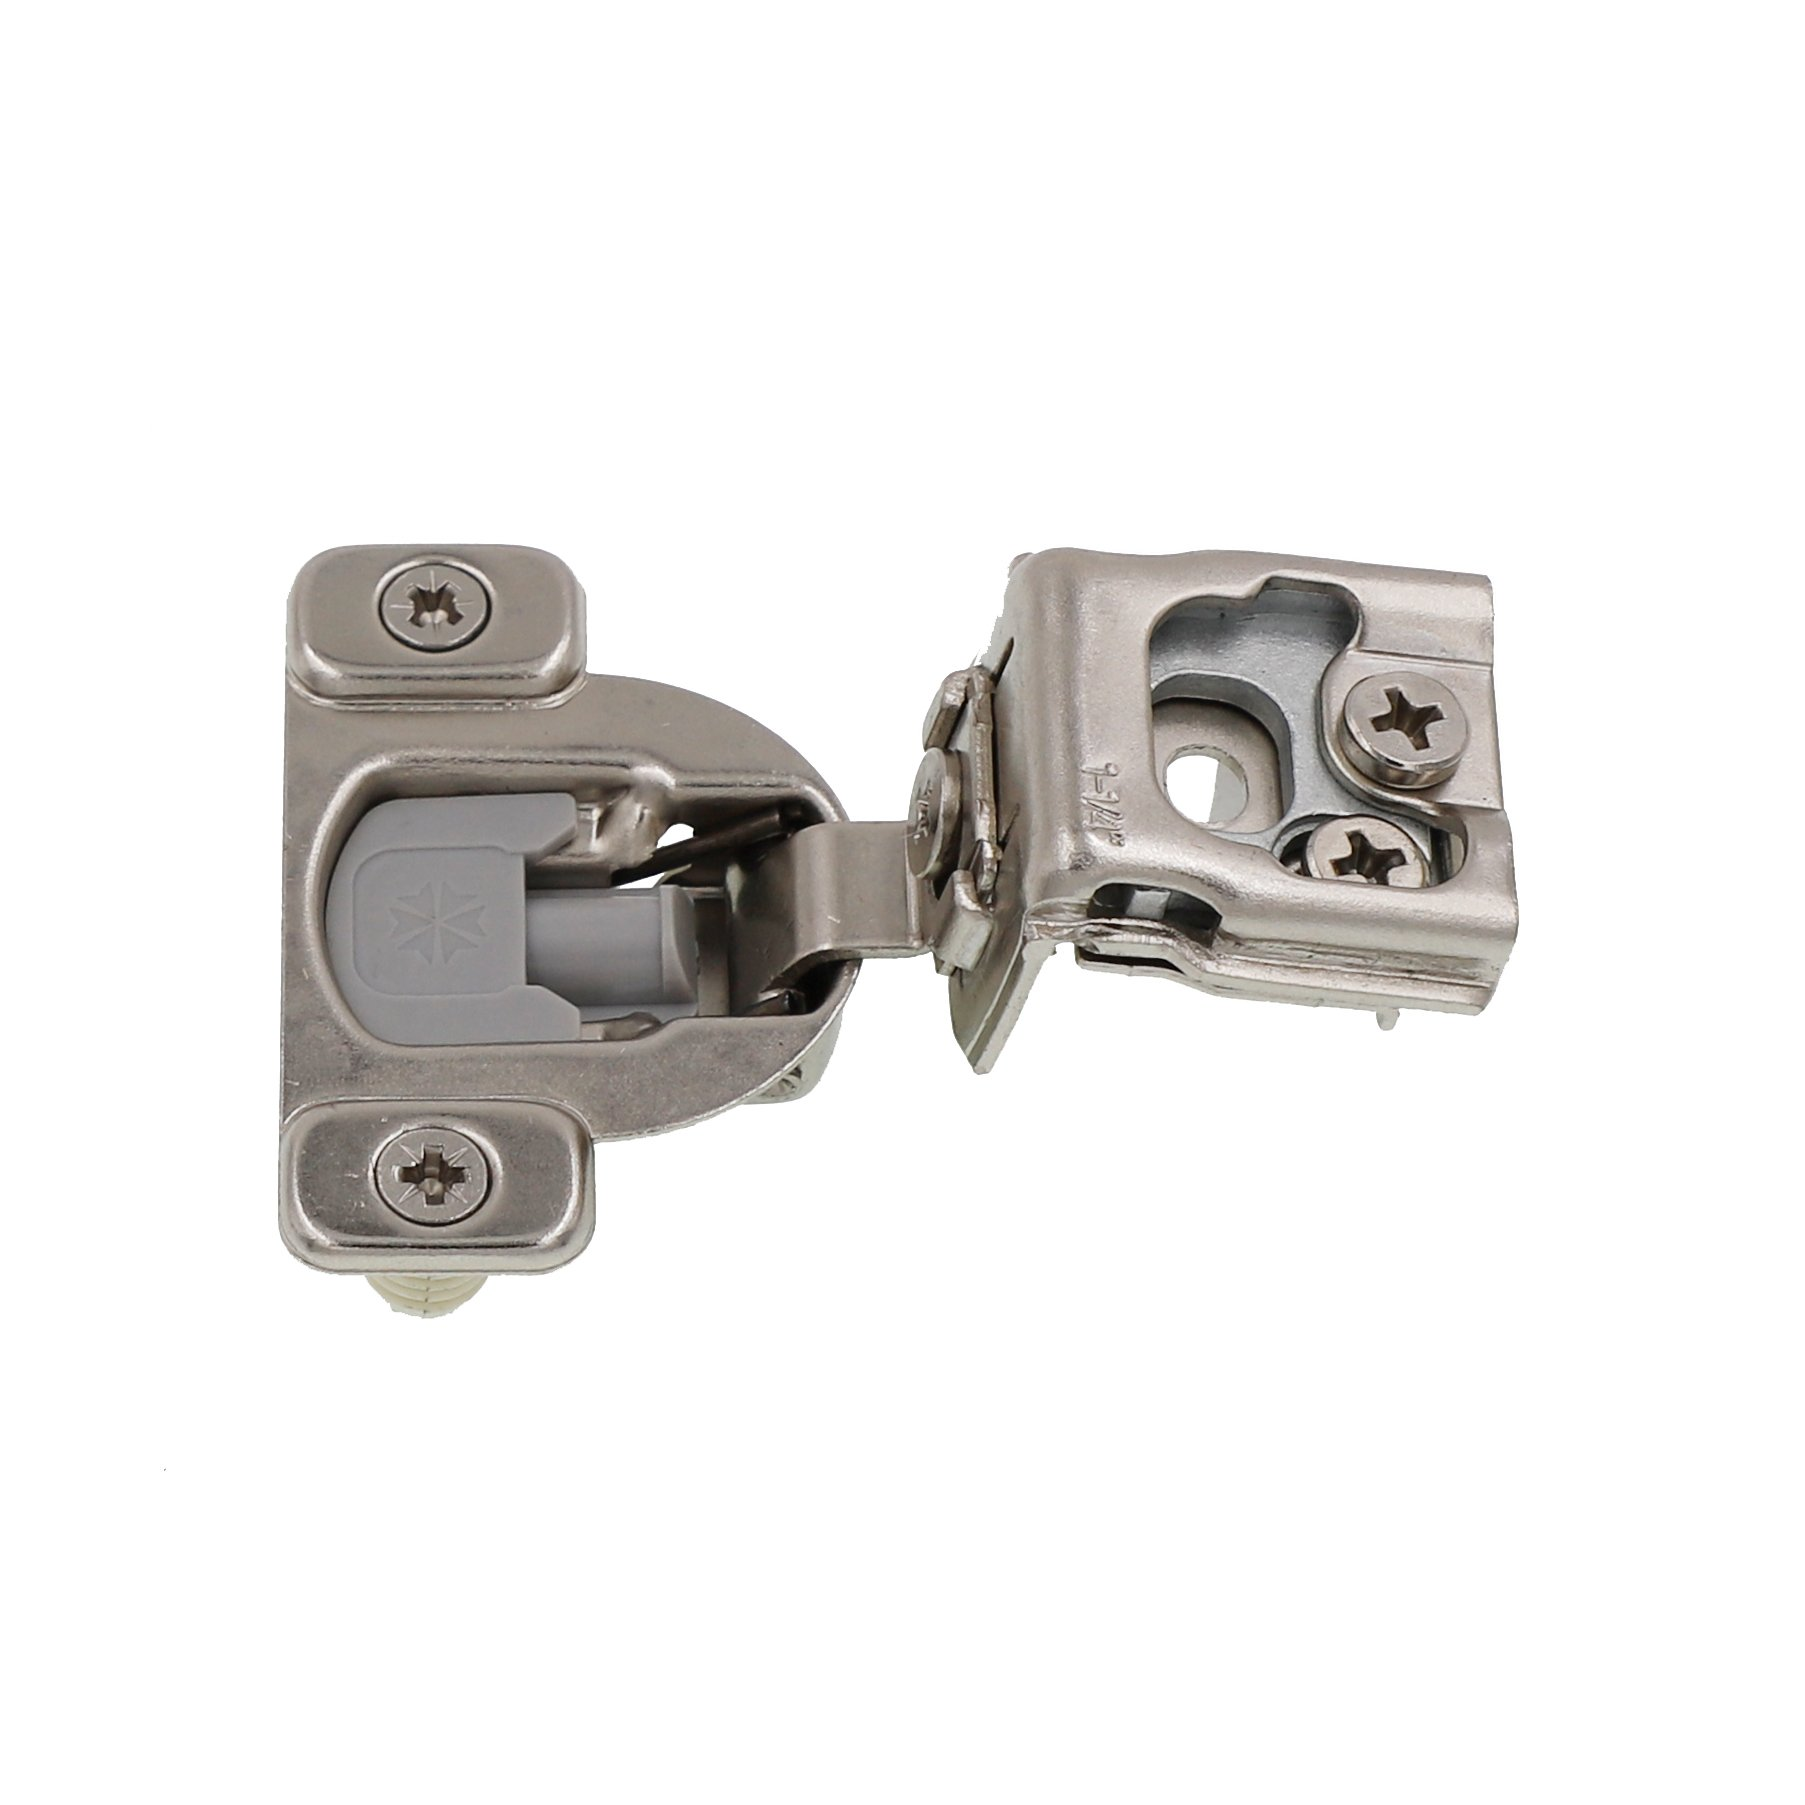 1-1/4'' Overlay Soft Close Face Frame 105° Compact Cabinet Hinge (50) by DecoBasics (Image #3)